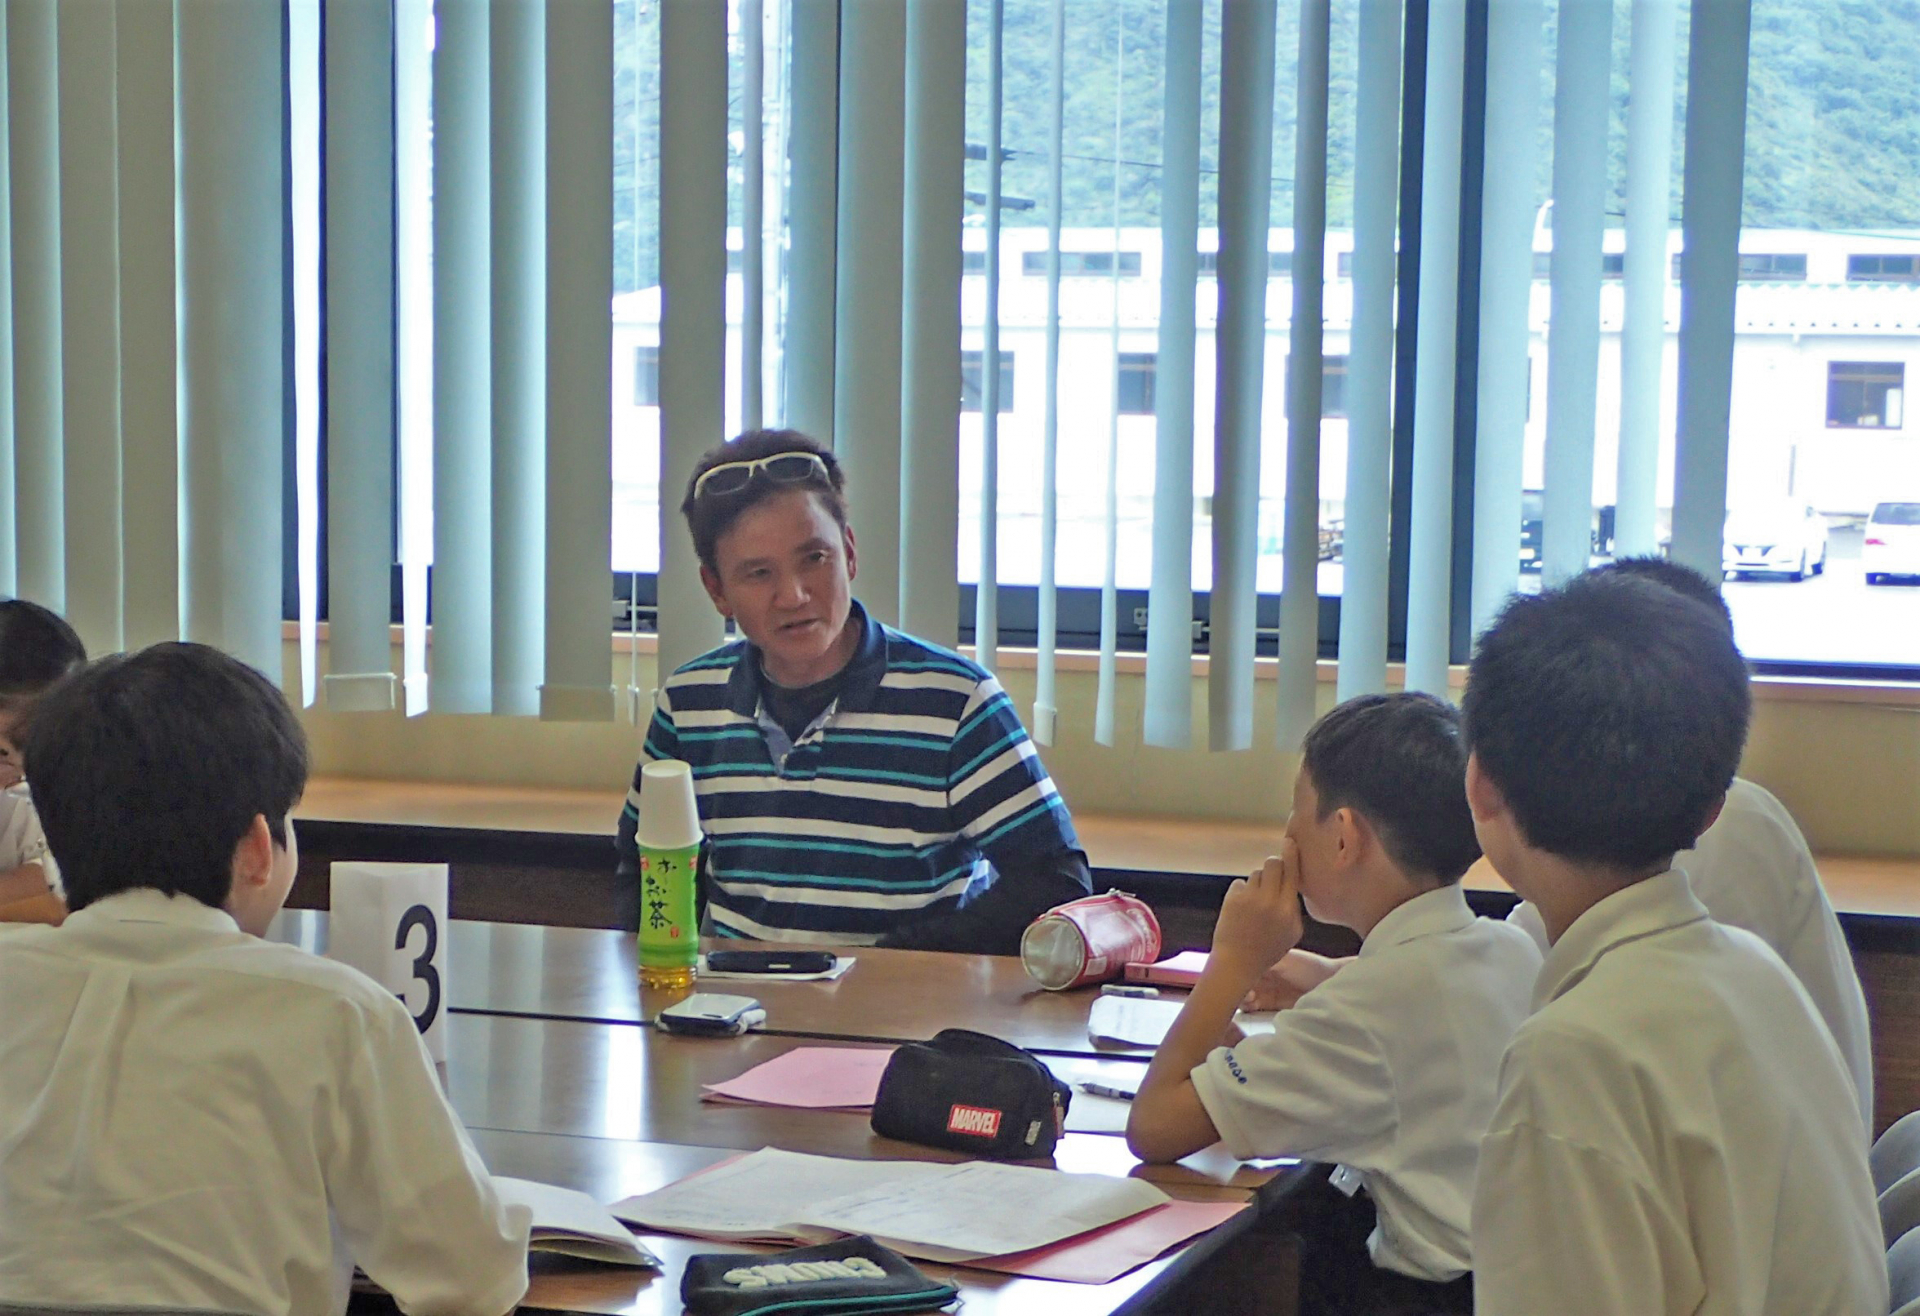 Junior high school students interviewing a fisherman